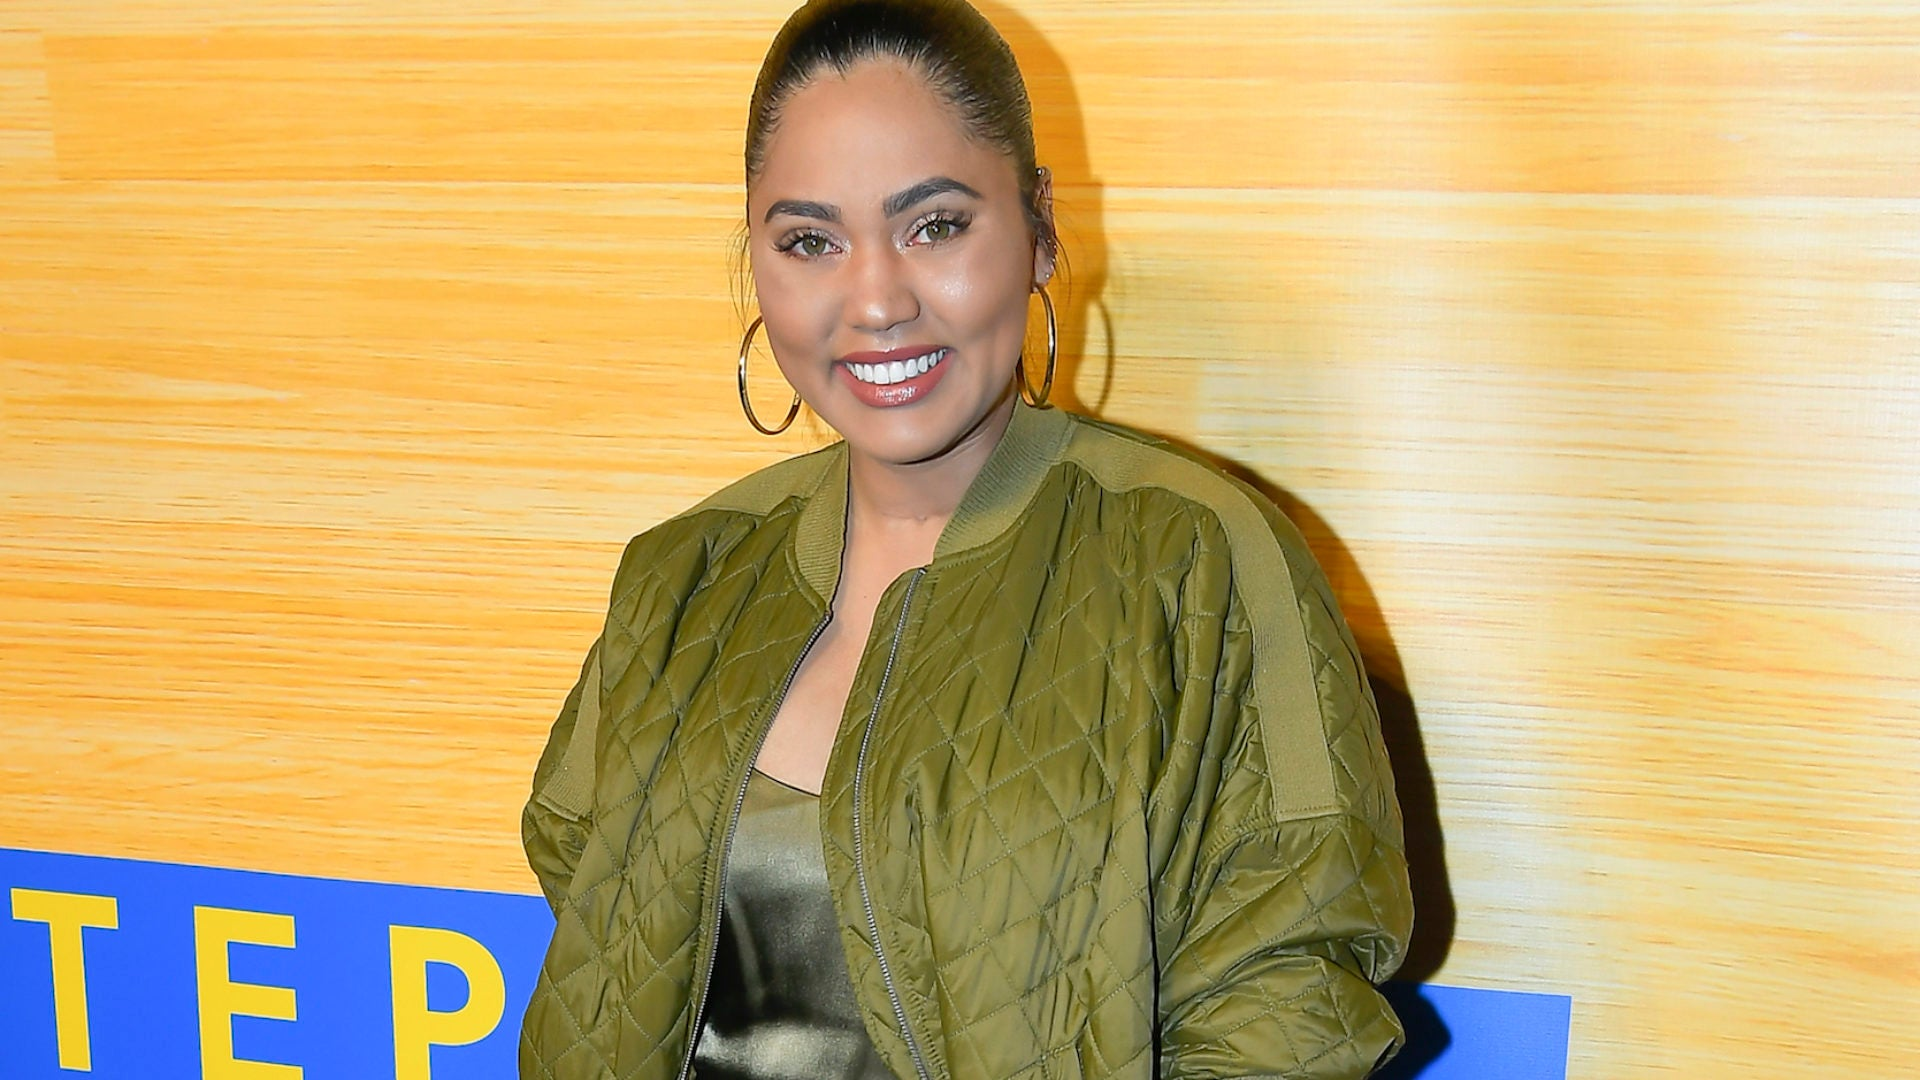 Ayesha Curry Says She Wasn't Embraced By Black Community When She Moved To U.S.